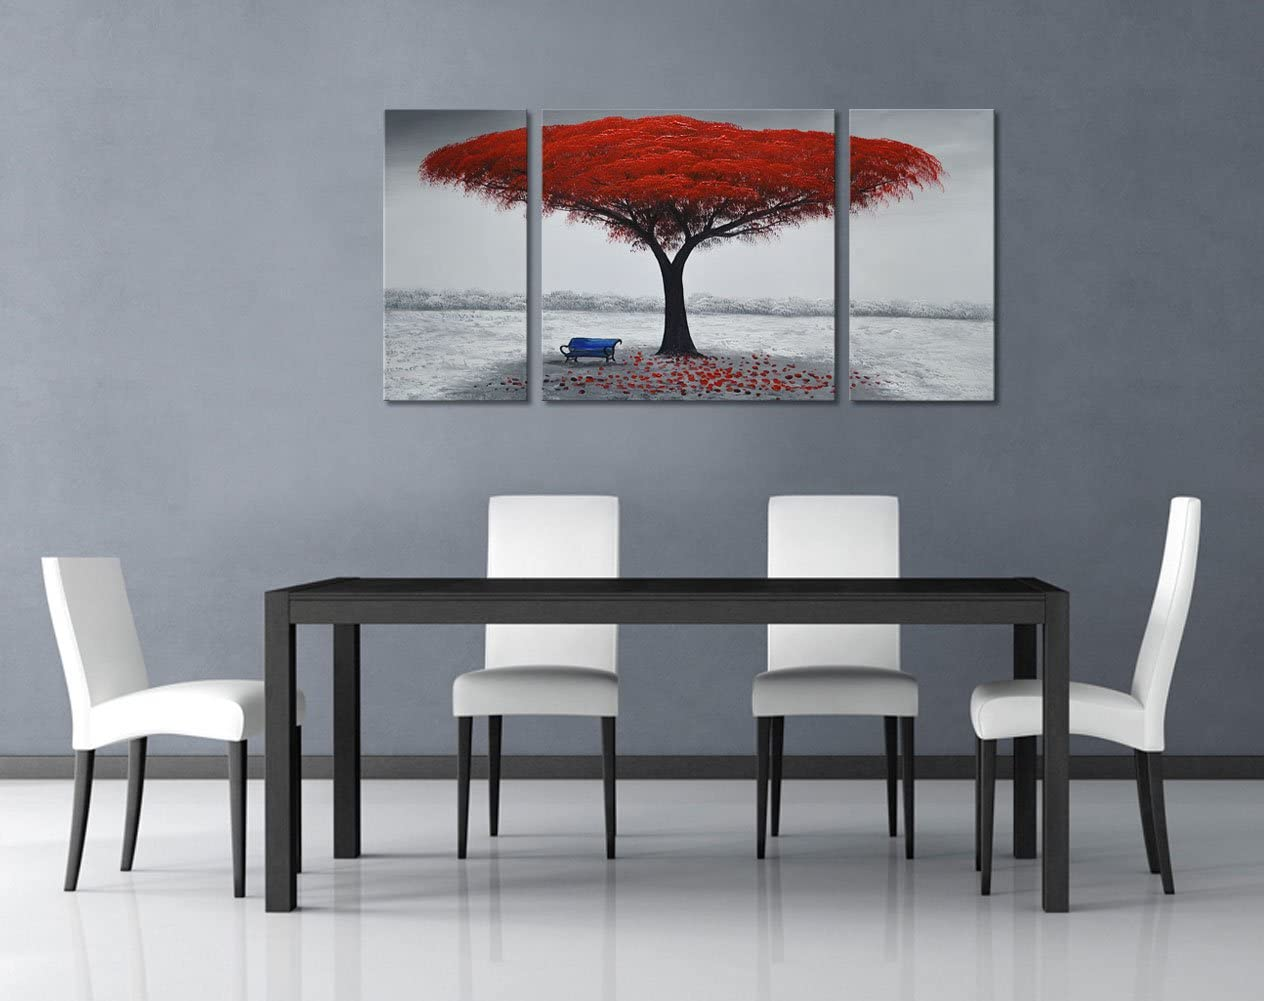 Winpeak Art Chair Under Red Tree Hand-Painted Modern Oil Painting Landscape Wall Art Abstract Picture Contemporary Artwork Canvas Stretched Ready to Hang 40 W x 20 H 10 x20 x2pcs, 20 x20 x1pc